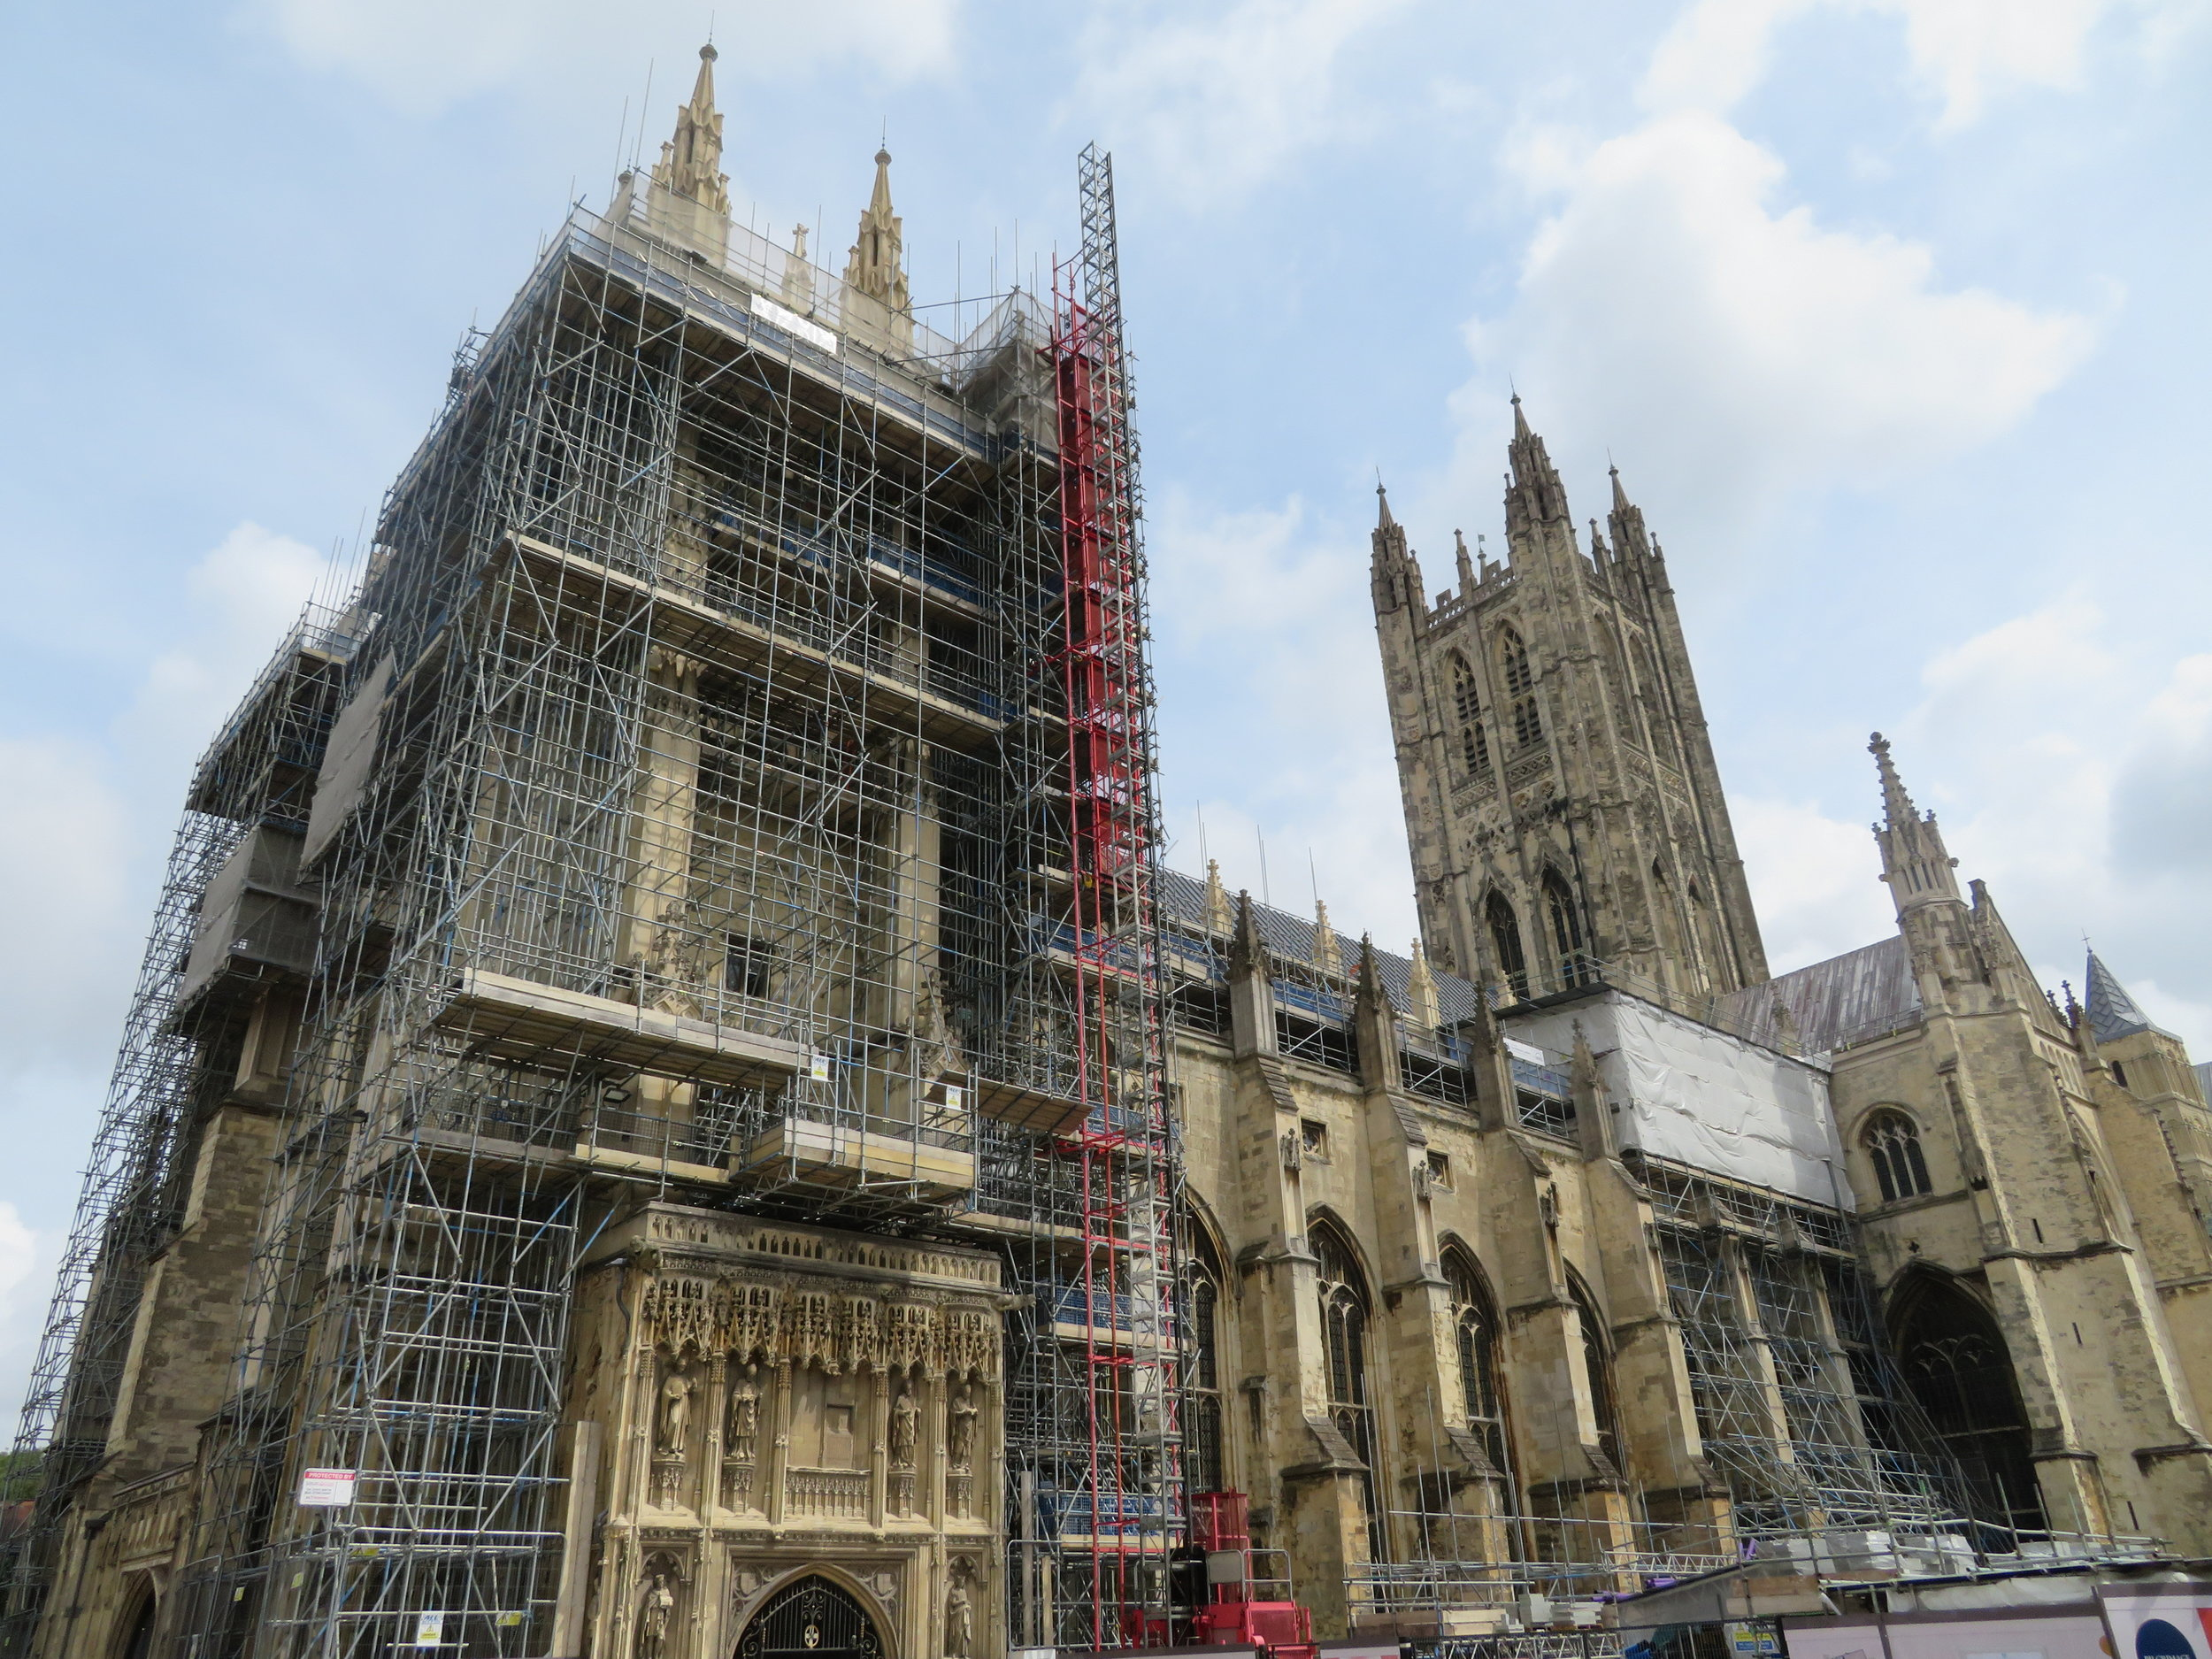 Canterbury Cathedral … It's a magnificent building, although the scaffolding enveloping the exterior was a bit of a disappointment.